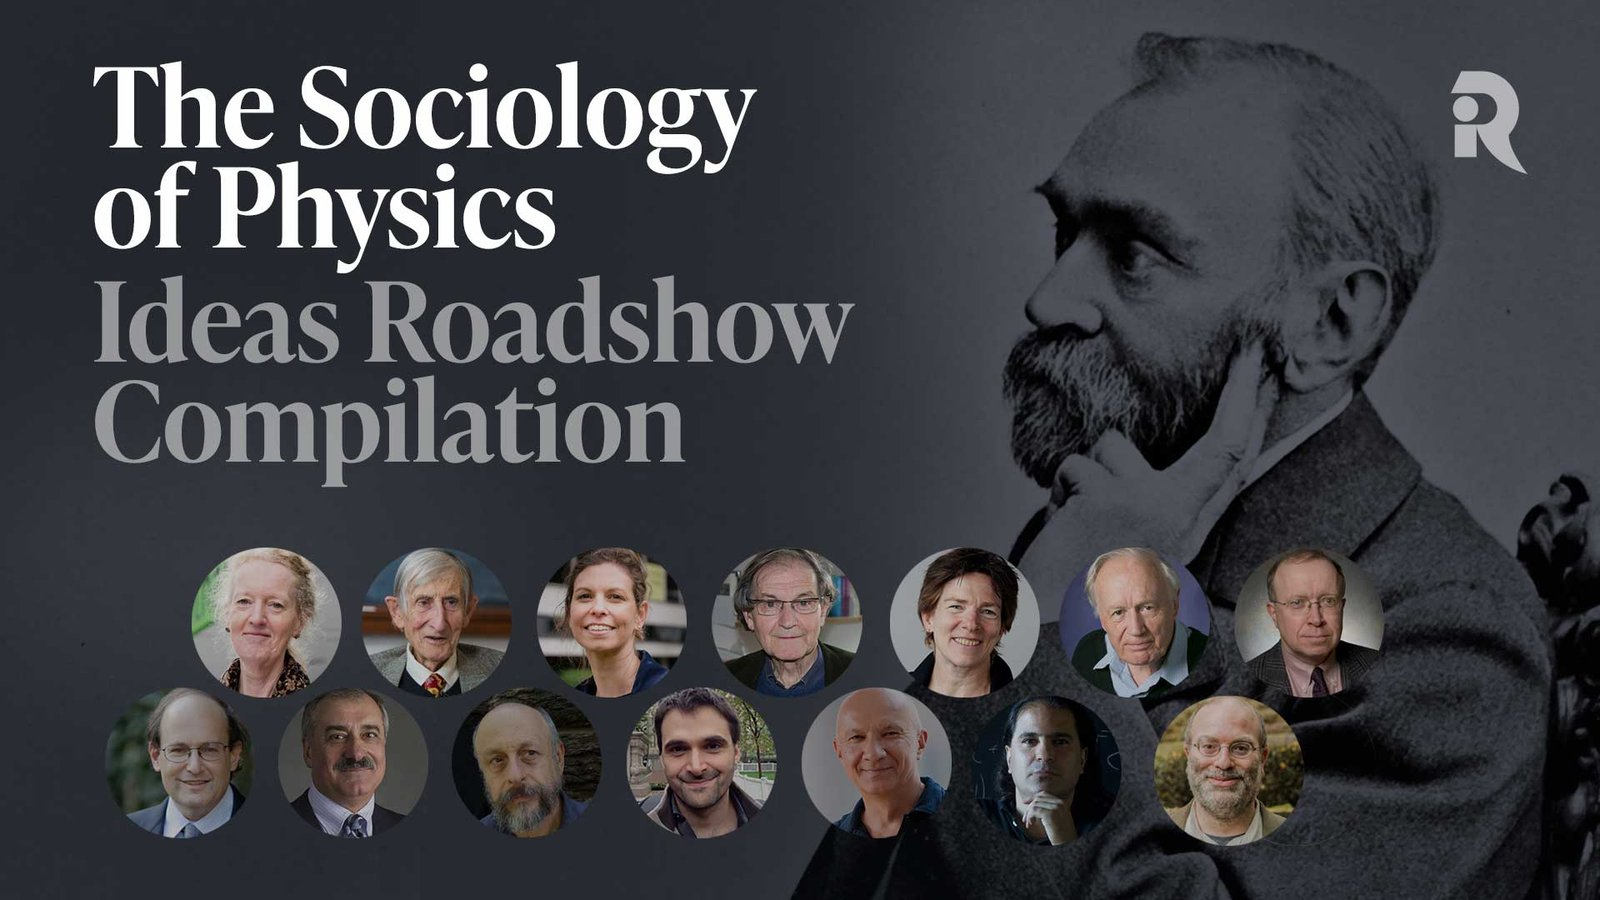 The Sociology of Physics